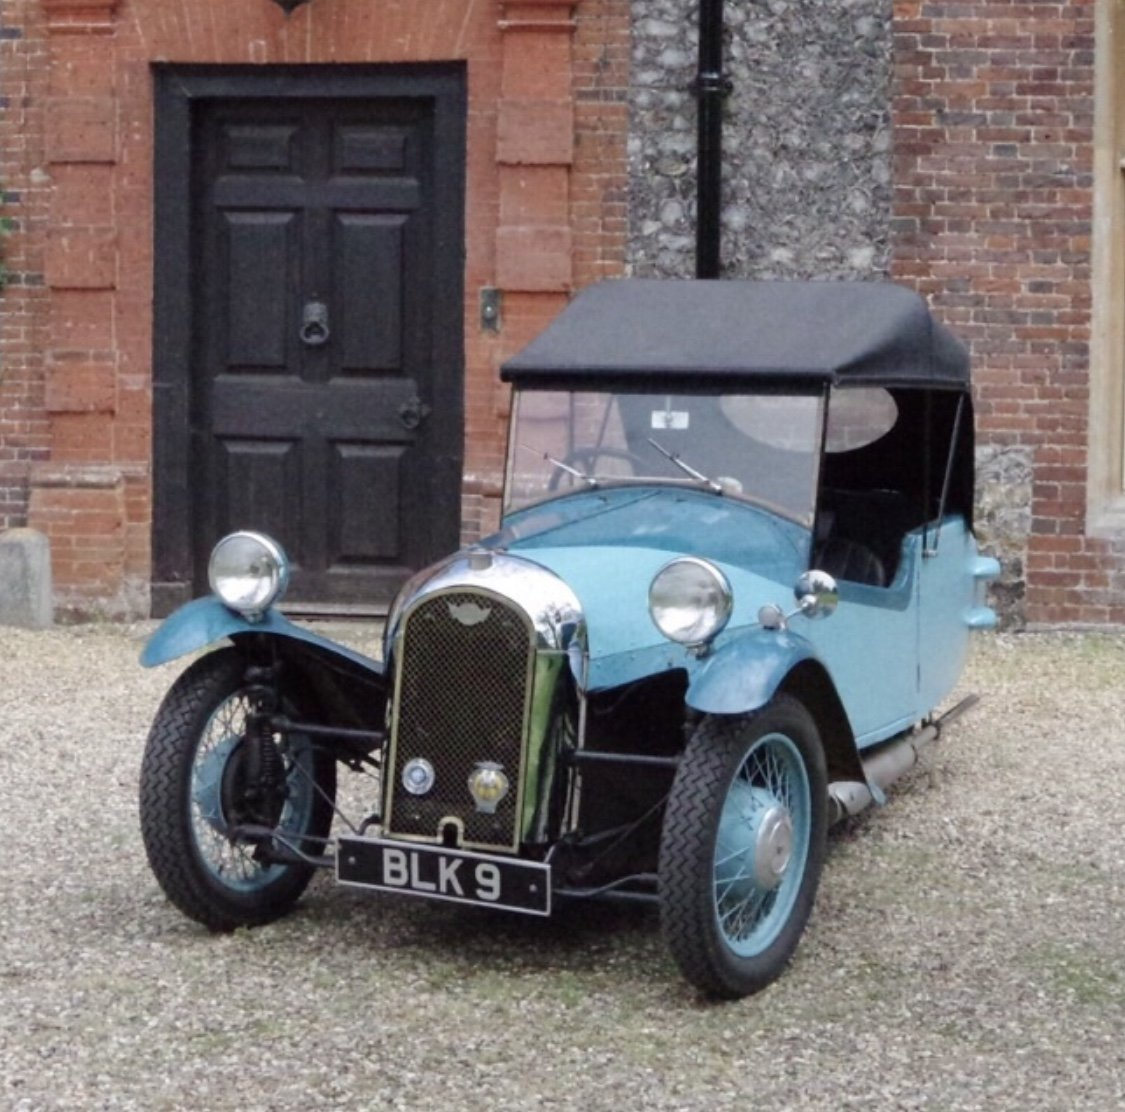 1934 Morgan F2 For sale at EAMA Classic and Retro 20/7 For Sale by Auction (picture 2 of 2)